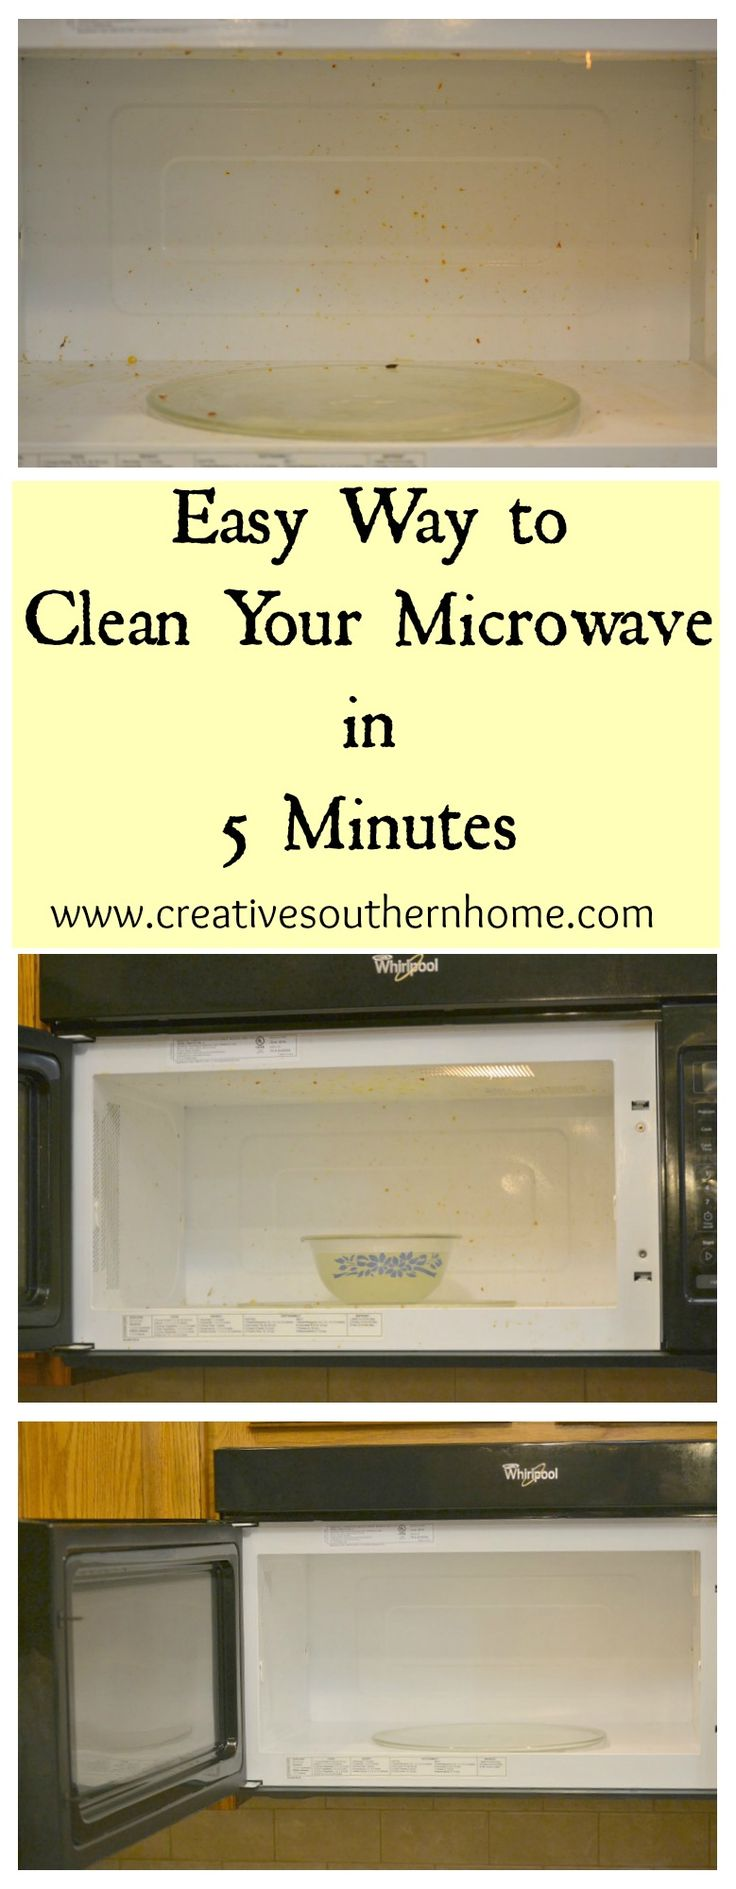 Easy way to clean your microwave in 5 minutes (or less).  www.creativesouthernhome.com